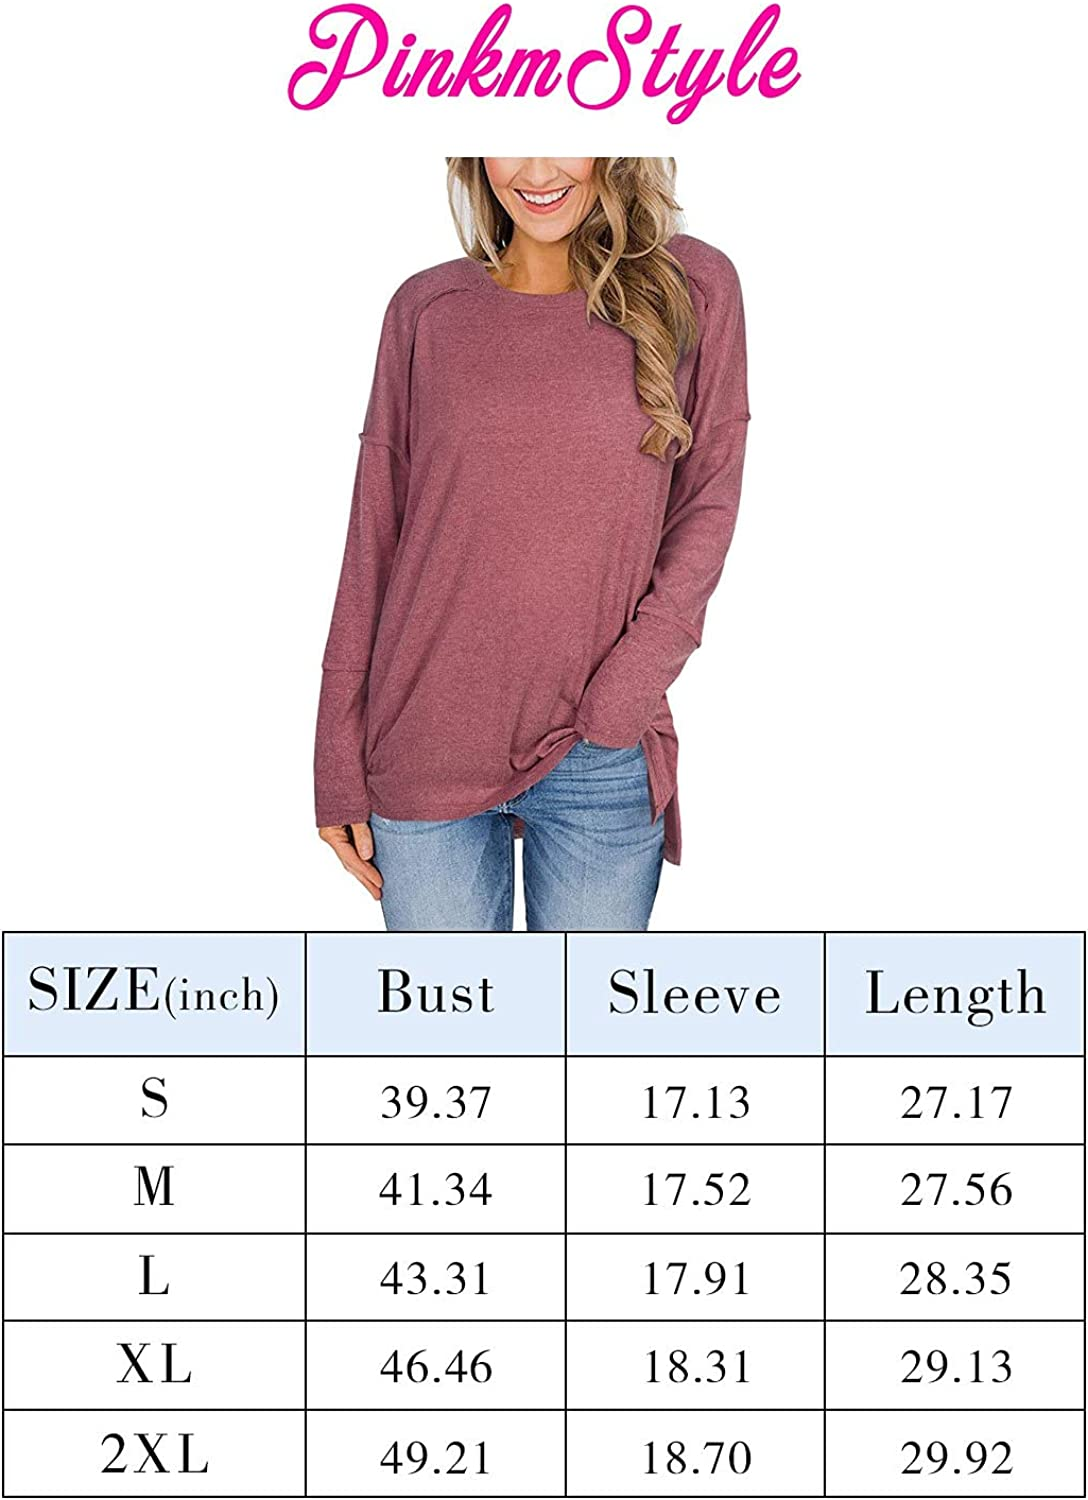 PINKMSTYLE Women's Crewneck Long Sleeve T Shirts Casual Side Split Tunic Tops